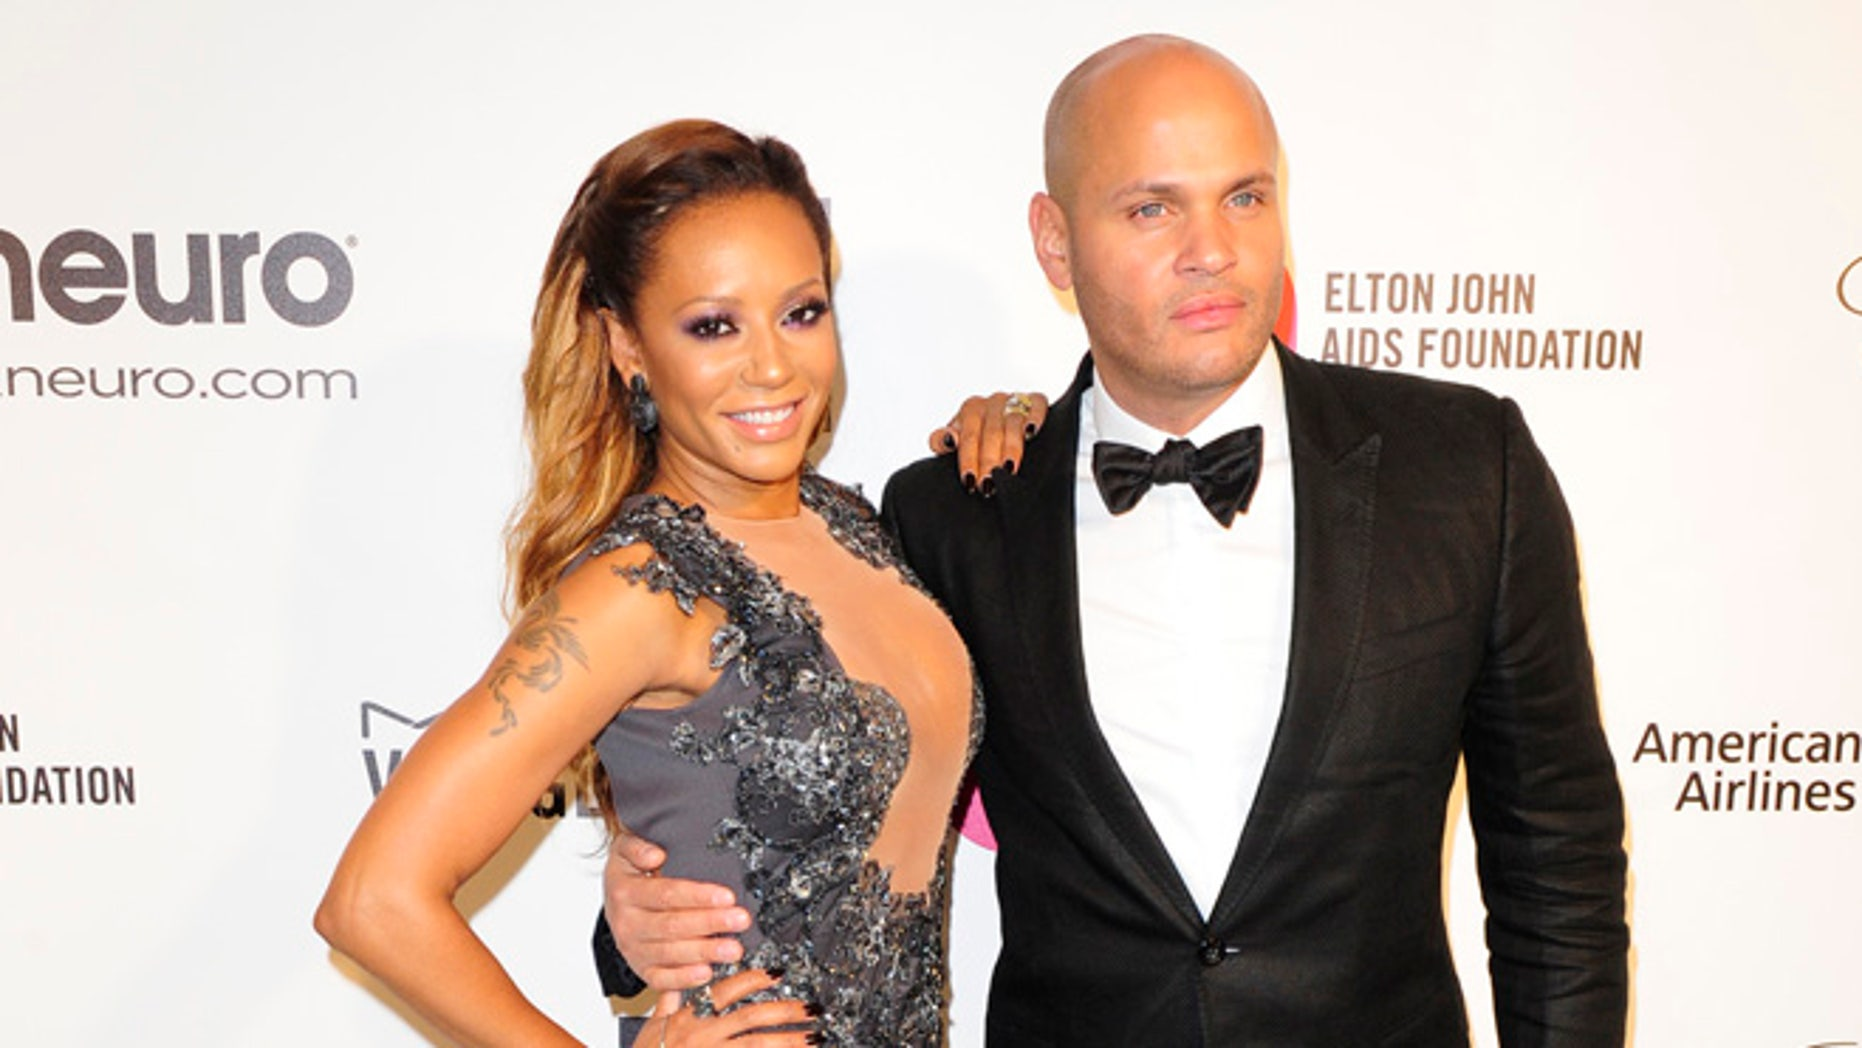 Pop singer and television personality Melanie Brown and spouse Stephen Belafonte arrive at the 2014 Elton John AIDS Foundation Oscar Party in West Hollywood, California March 2, 2014. REUTERS/Gus Ruelas (UNITED STATES TAGS: ENTERTAINMENT) (OSCARS-PARTIES) - RTR3FZ6Z